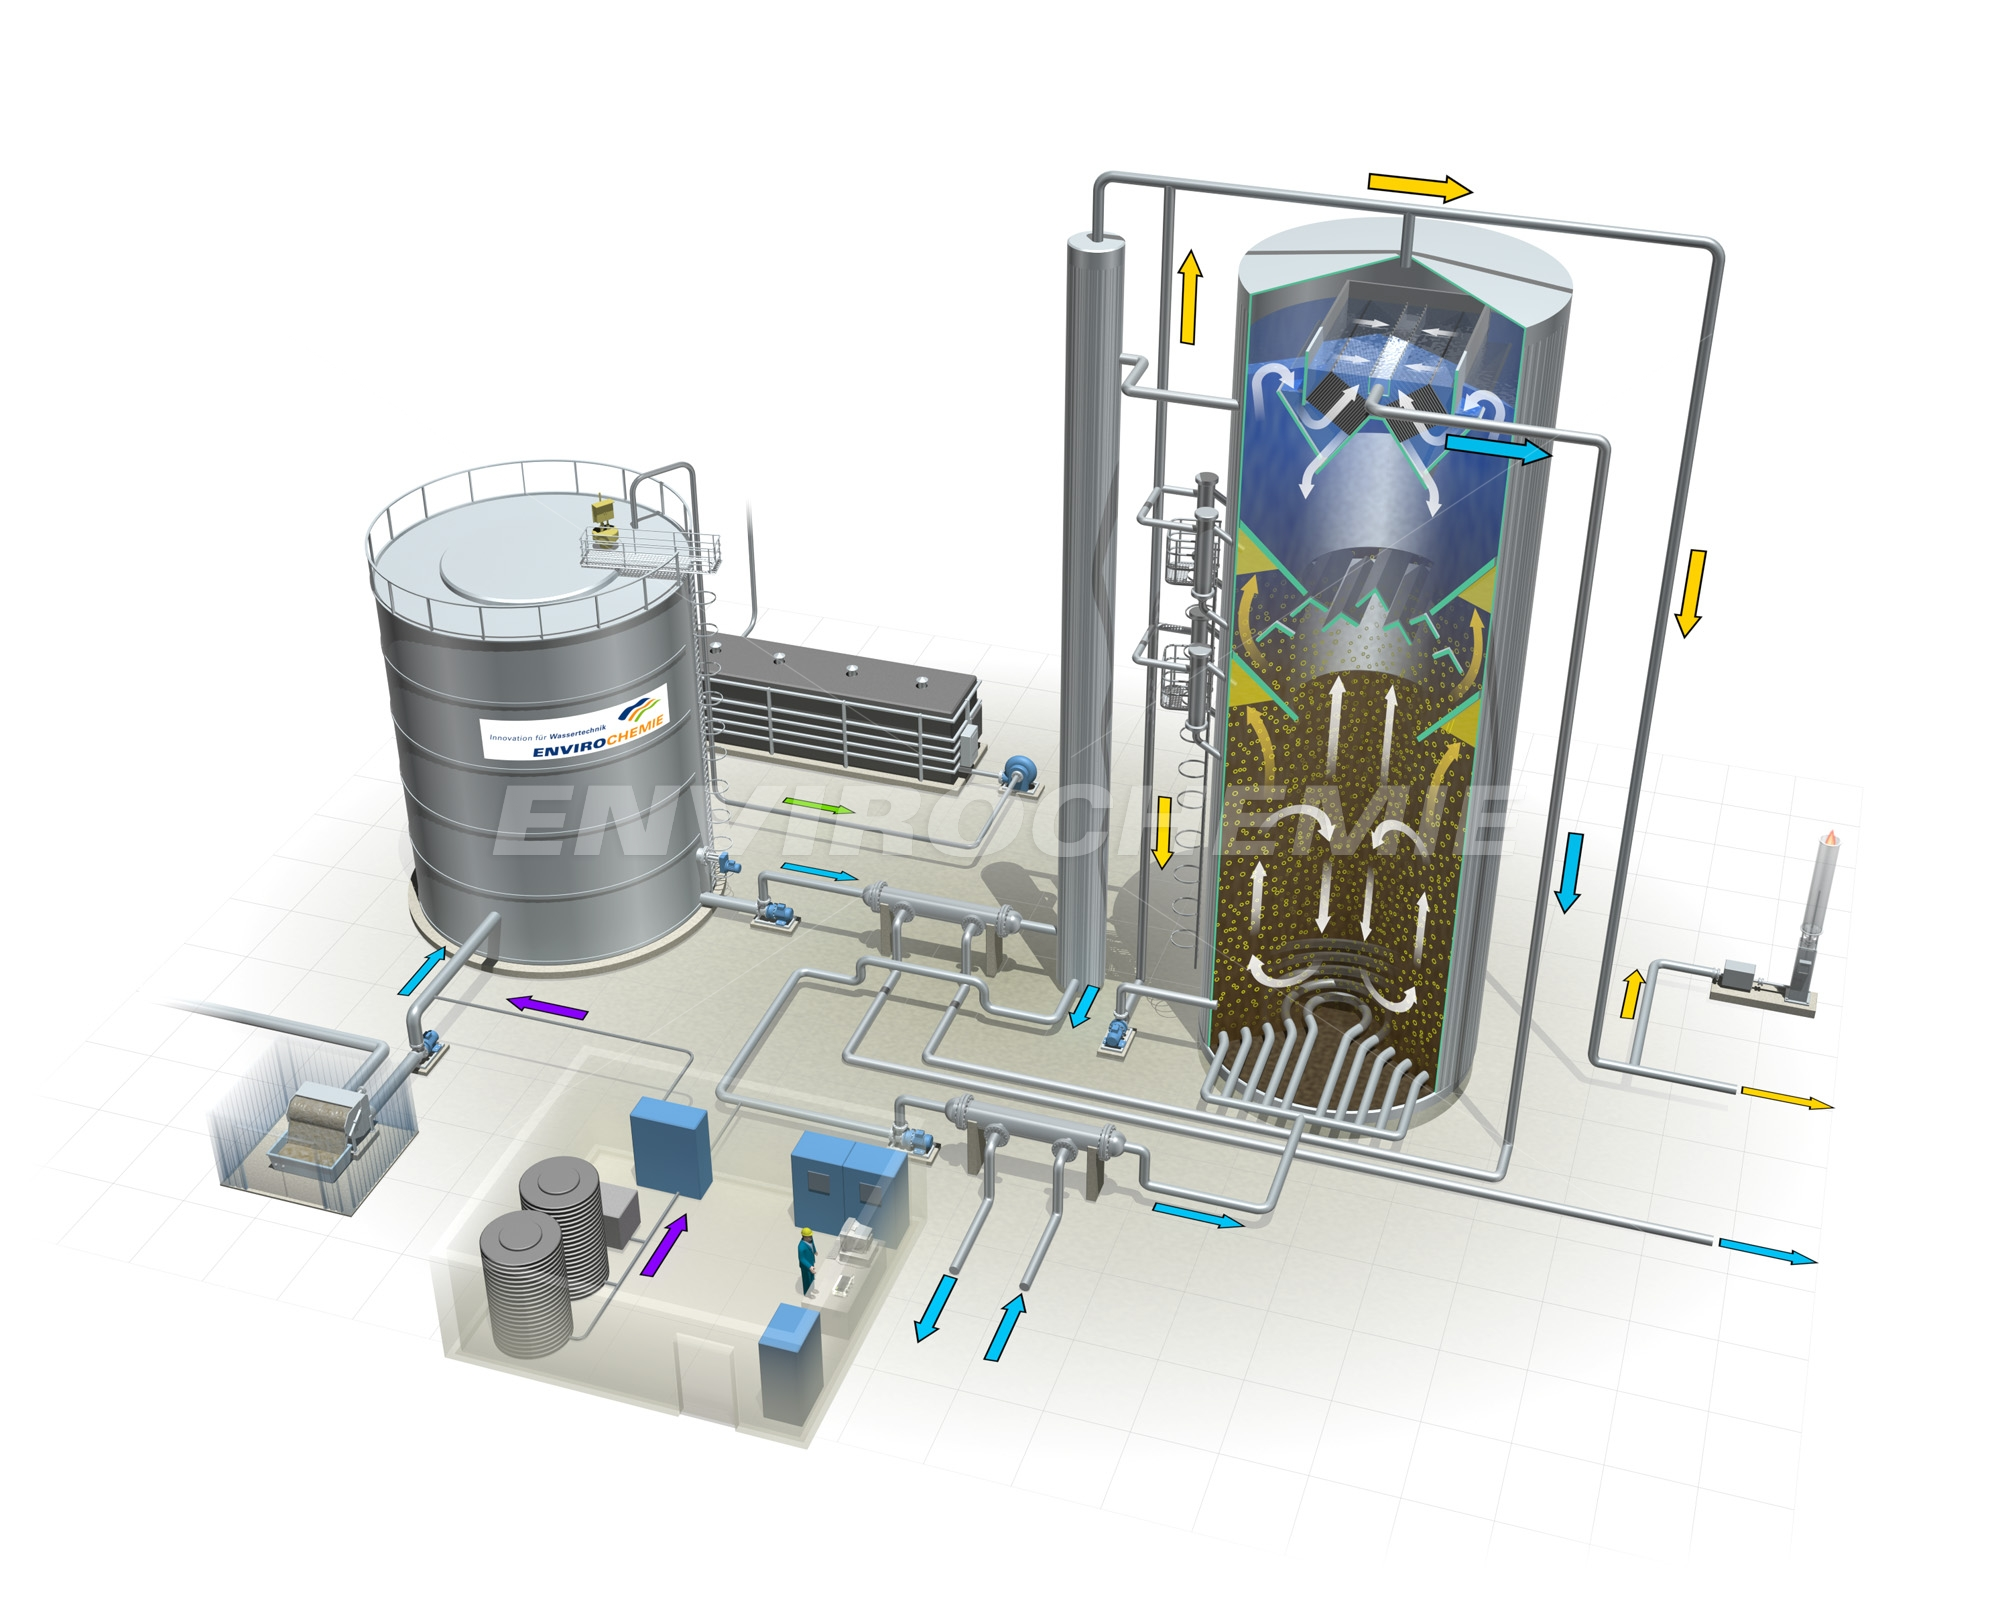 New anaerobic technology for wastewater pre treatment in the biomar ahpx anaerobic wastewater pre treatment of the brewery wastewater at the warstein sewage treatment plant pooptronica Choice Image